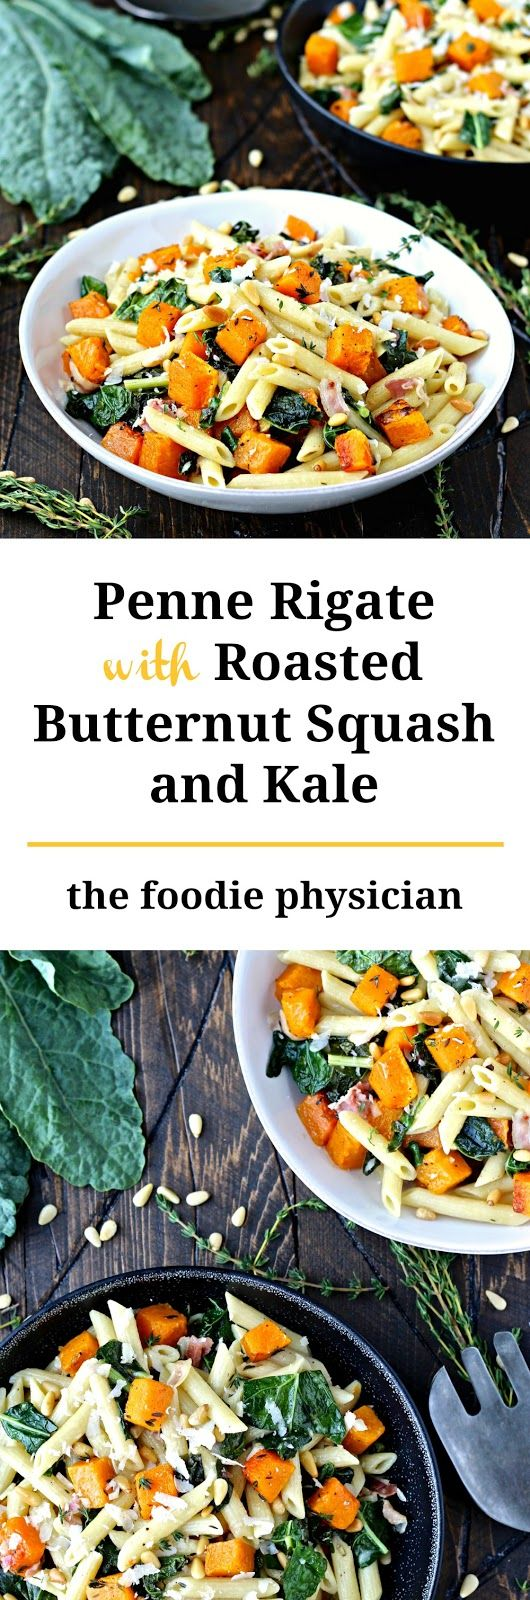 Penne with Roasted Butternut Squash and Kale. This hearty pasta dish featuring colorful fall vegetables is packed with flavor and nutrition! Sponsored by @dreamfields for #HealthyPastaMonth | @foodiephysician